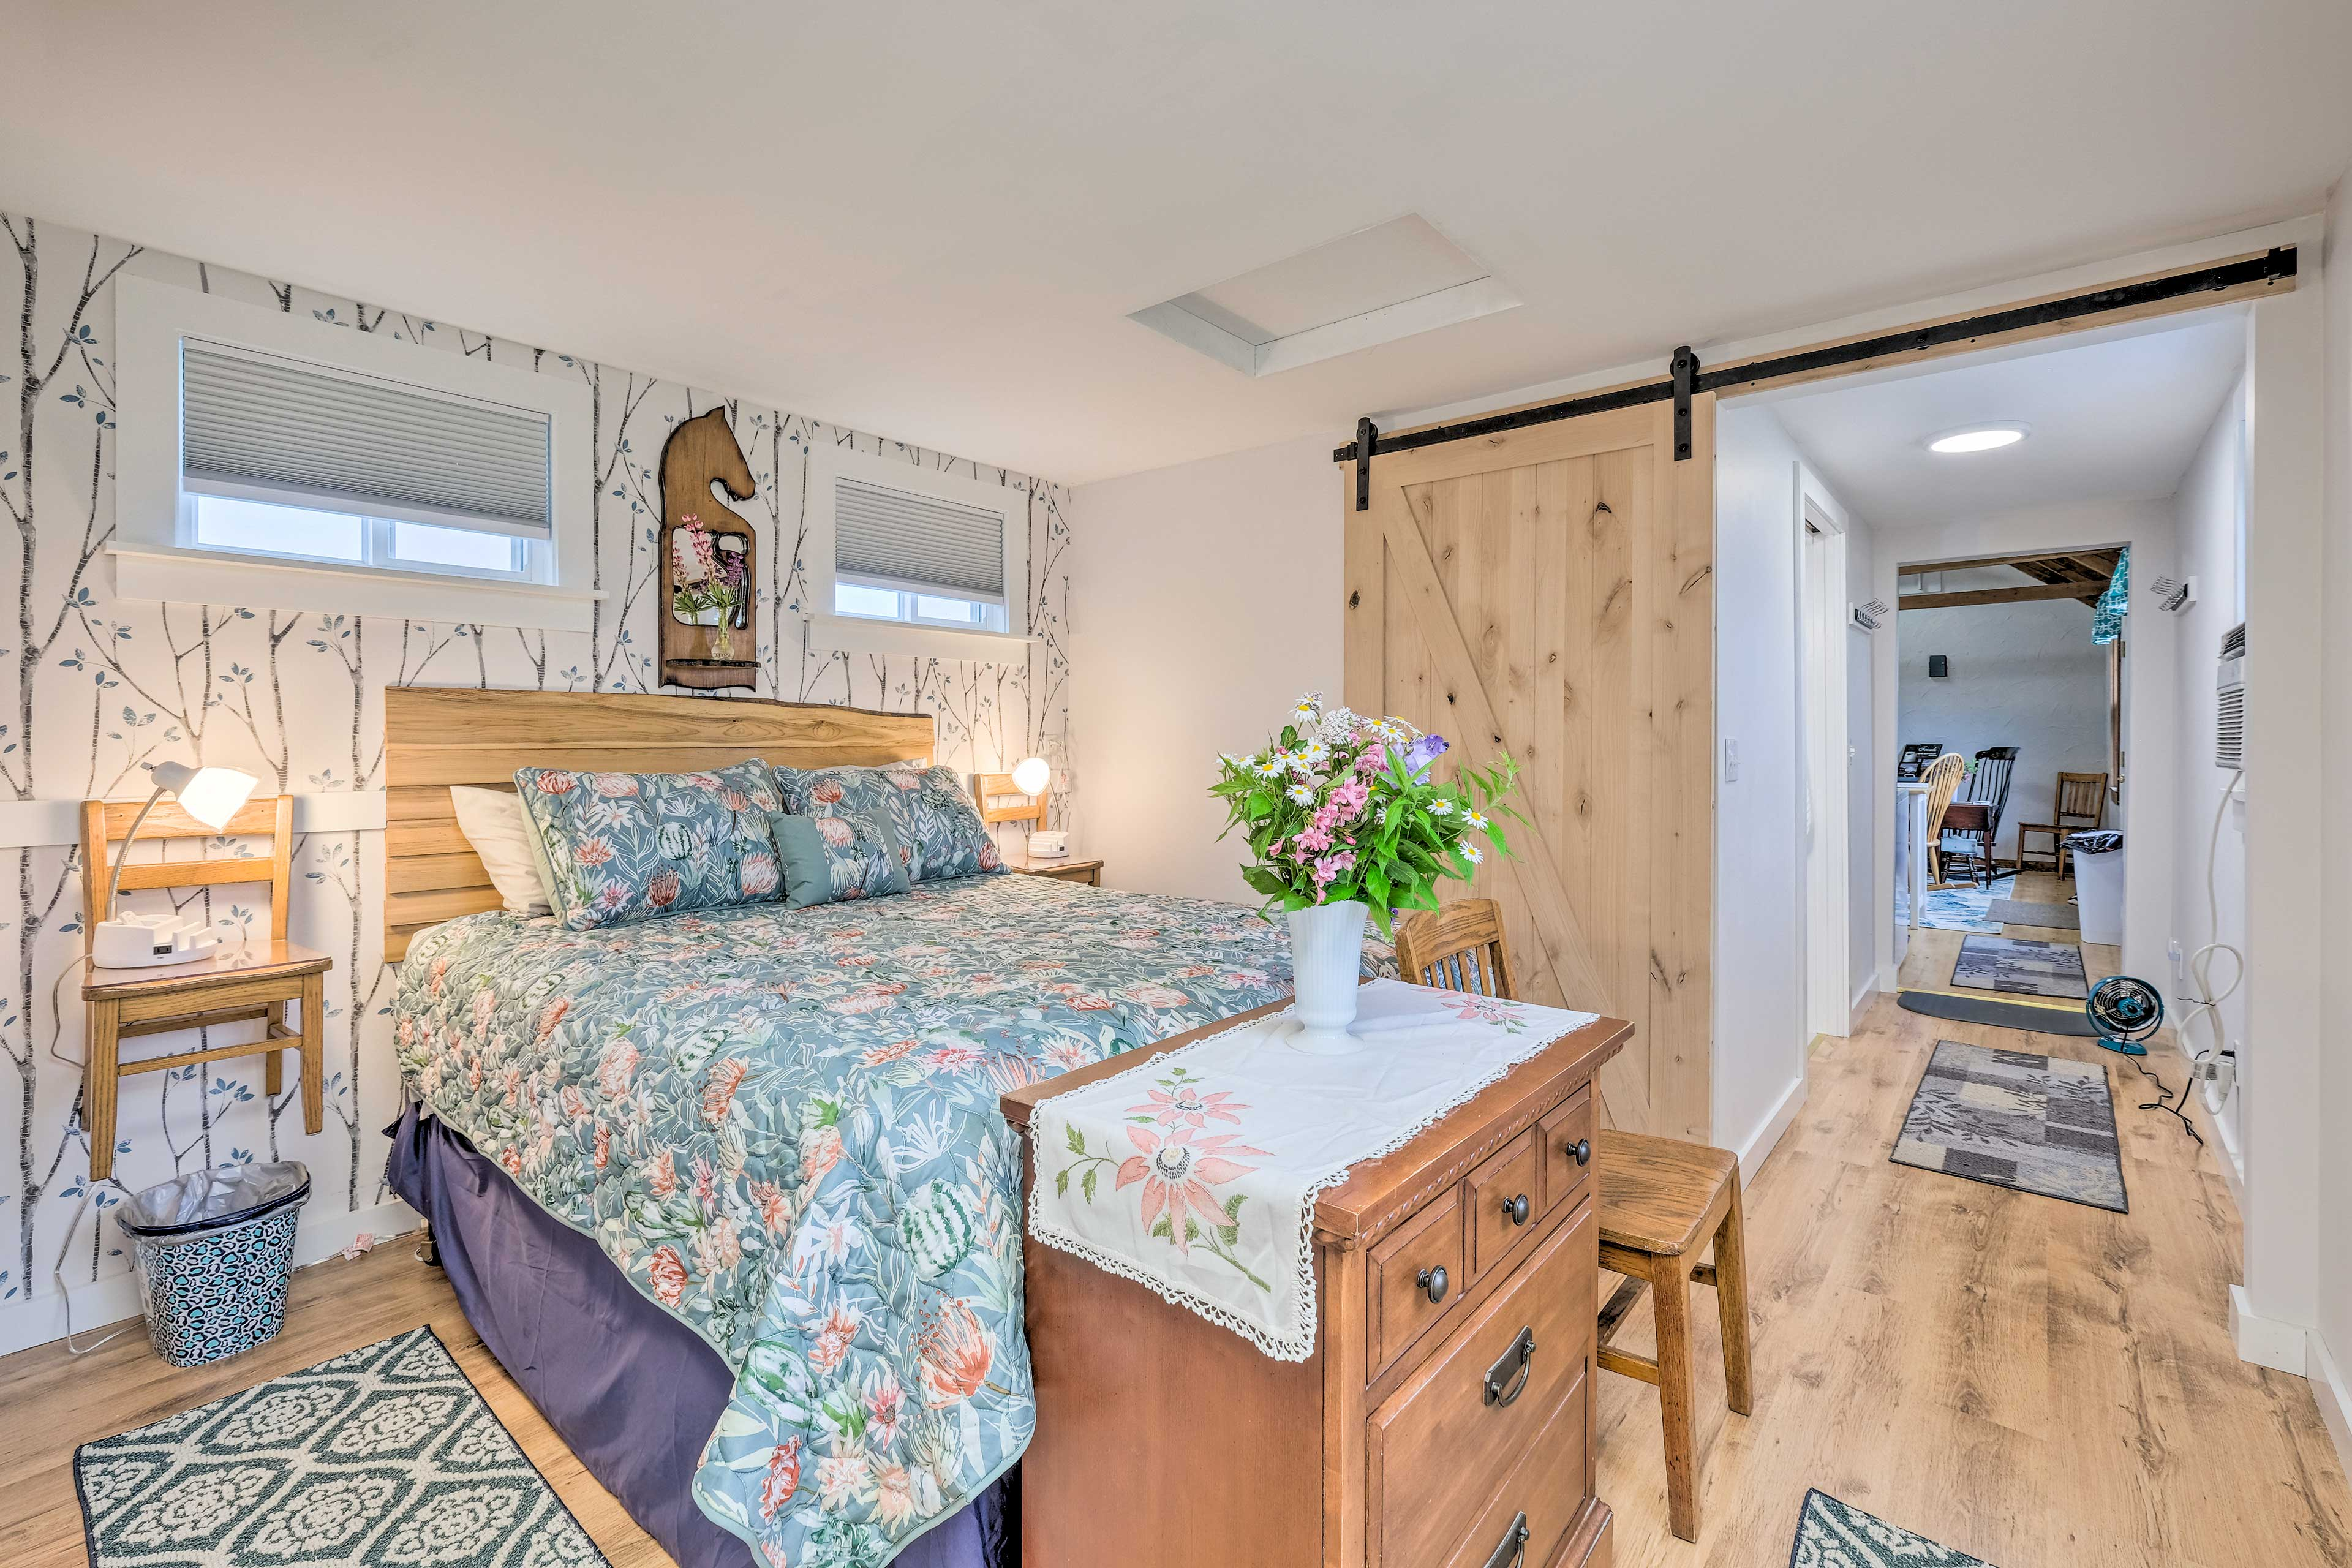 Bedroom | Queen Bed | Linens Provided | Step-Free Access